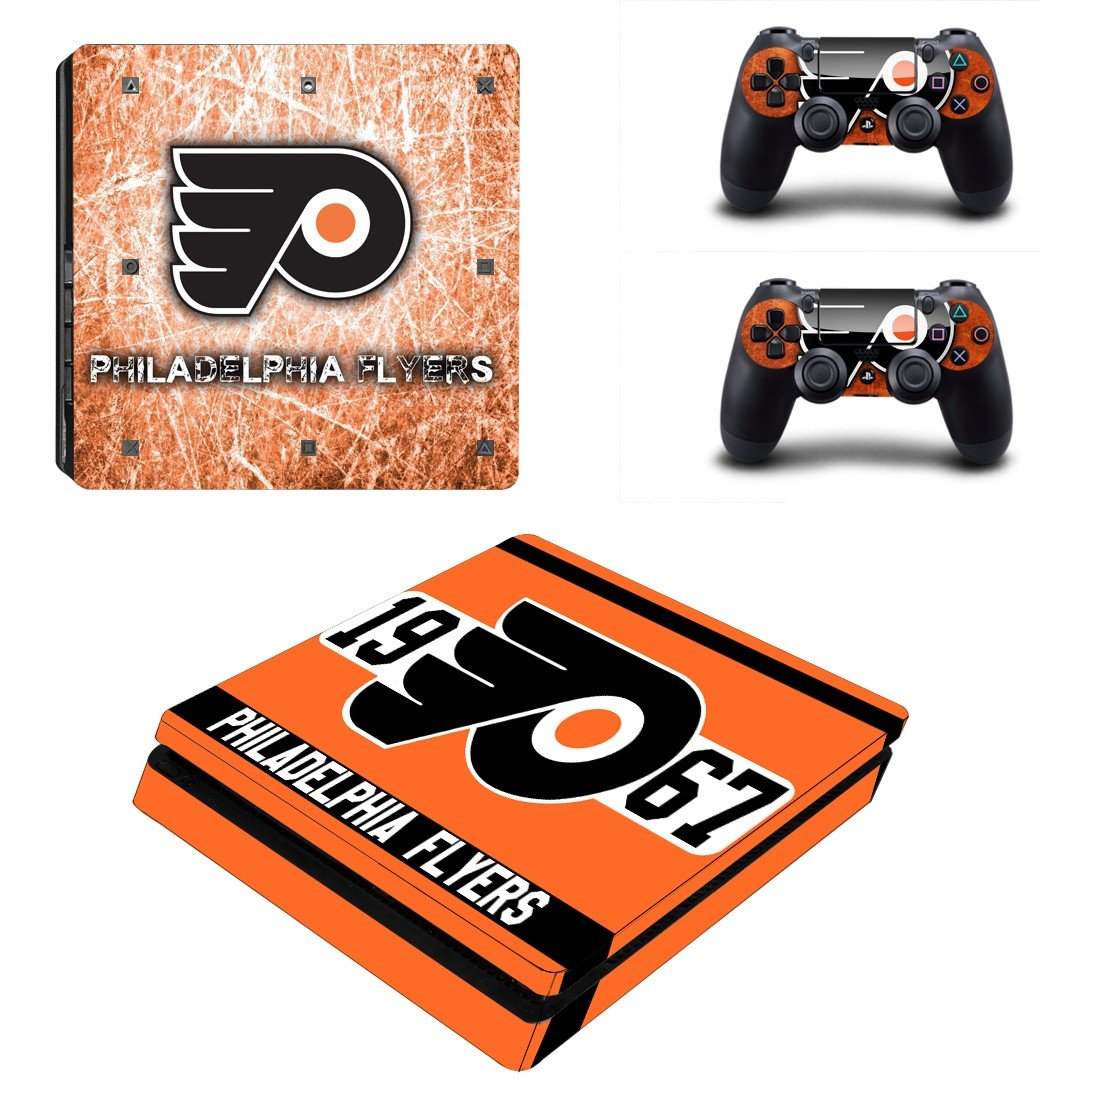 Philadelphia Flyers Play Station 4 slim skin decal for console and 2 controllers